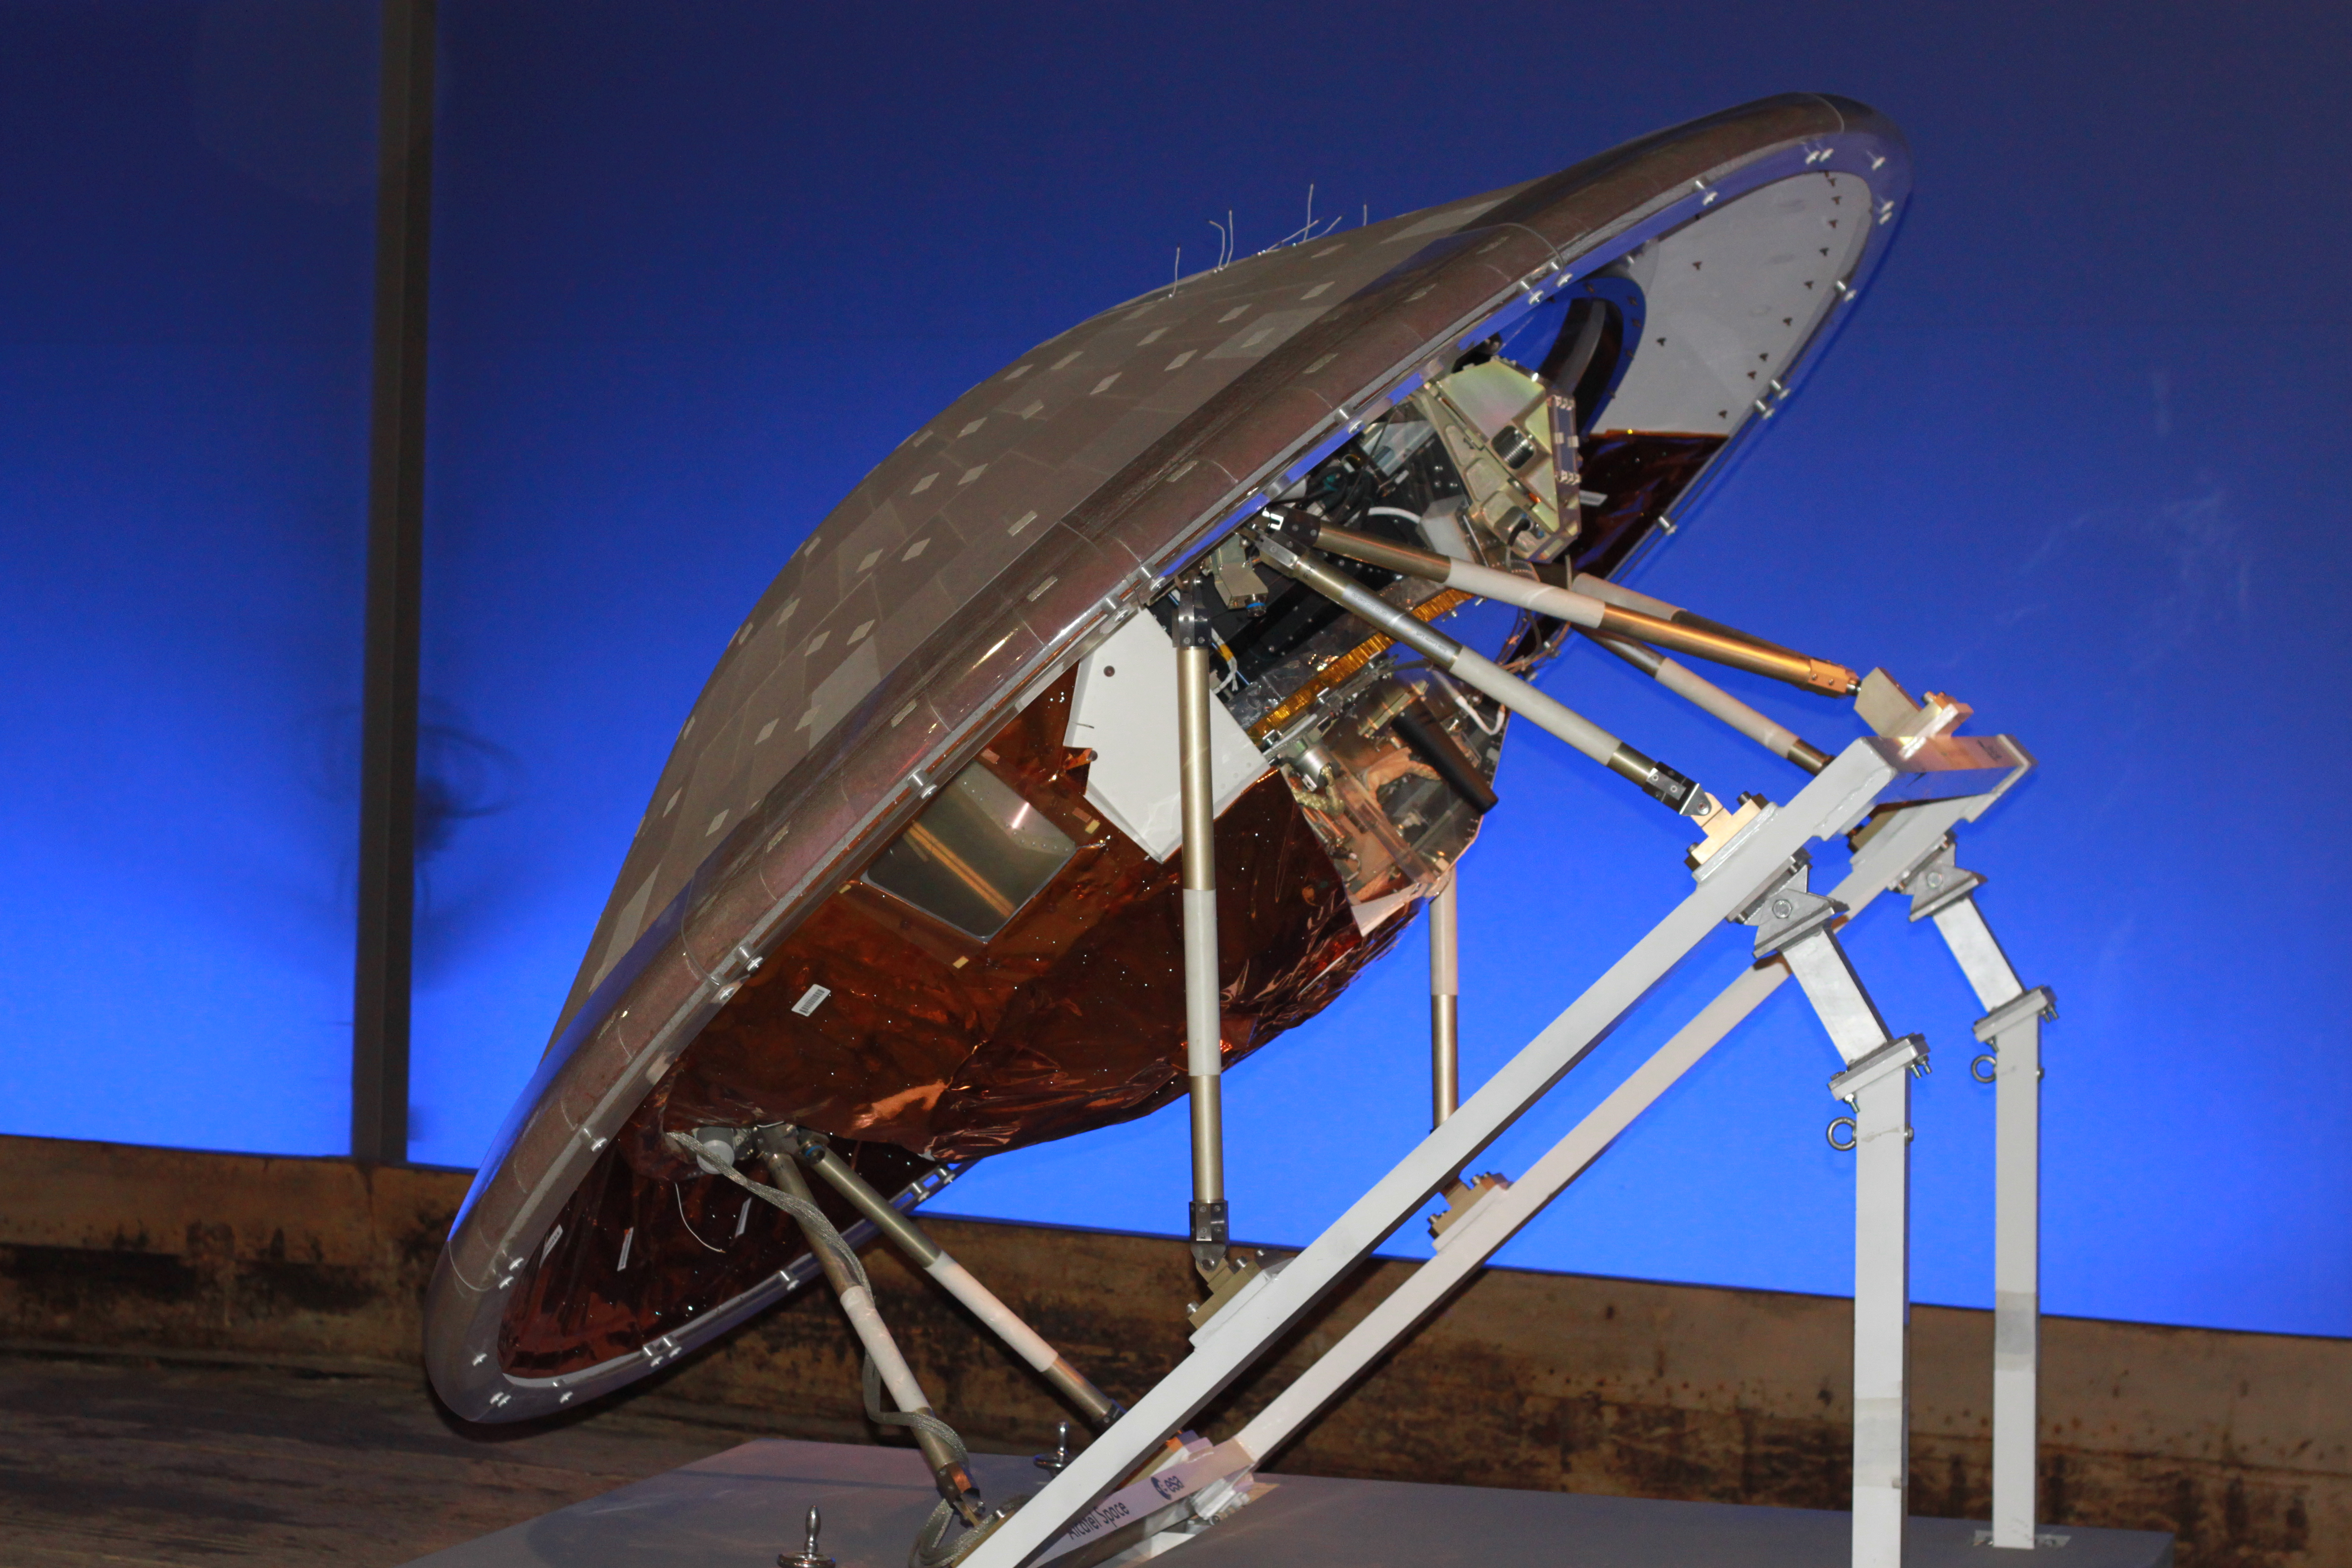 Model_of_Huygens_spaceprobe_with_heatshi